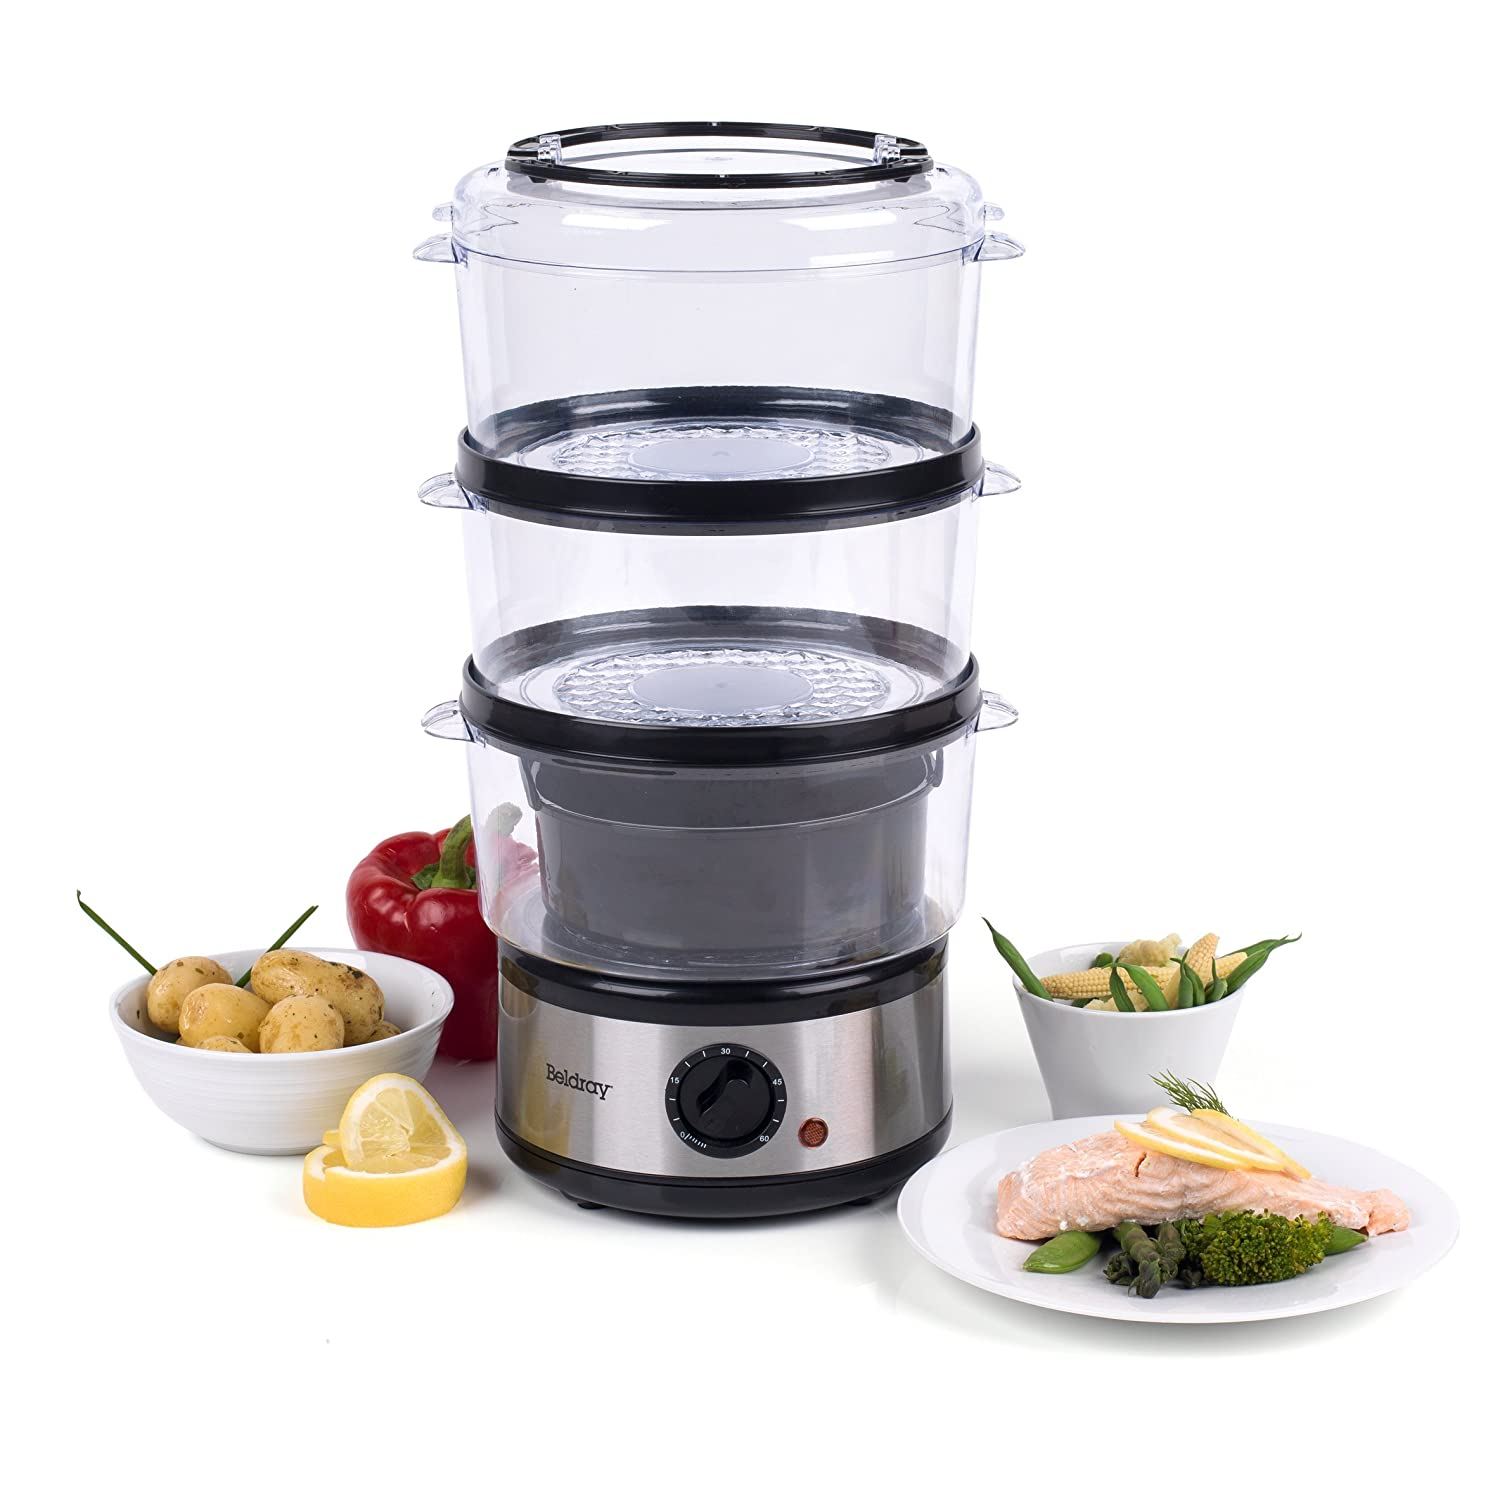 6 Litre New Quest 3 Layer Stainless Steel Compact Food Steamer with Rice Bowl